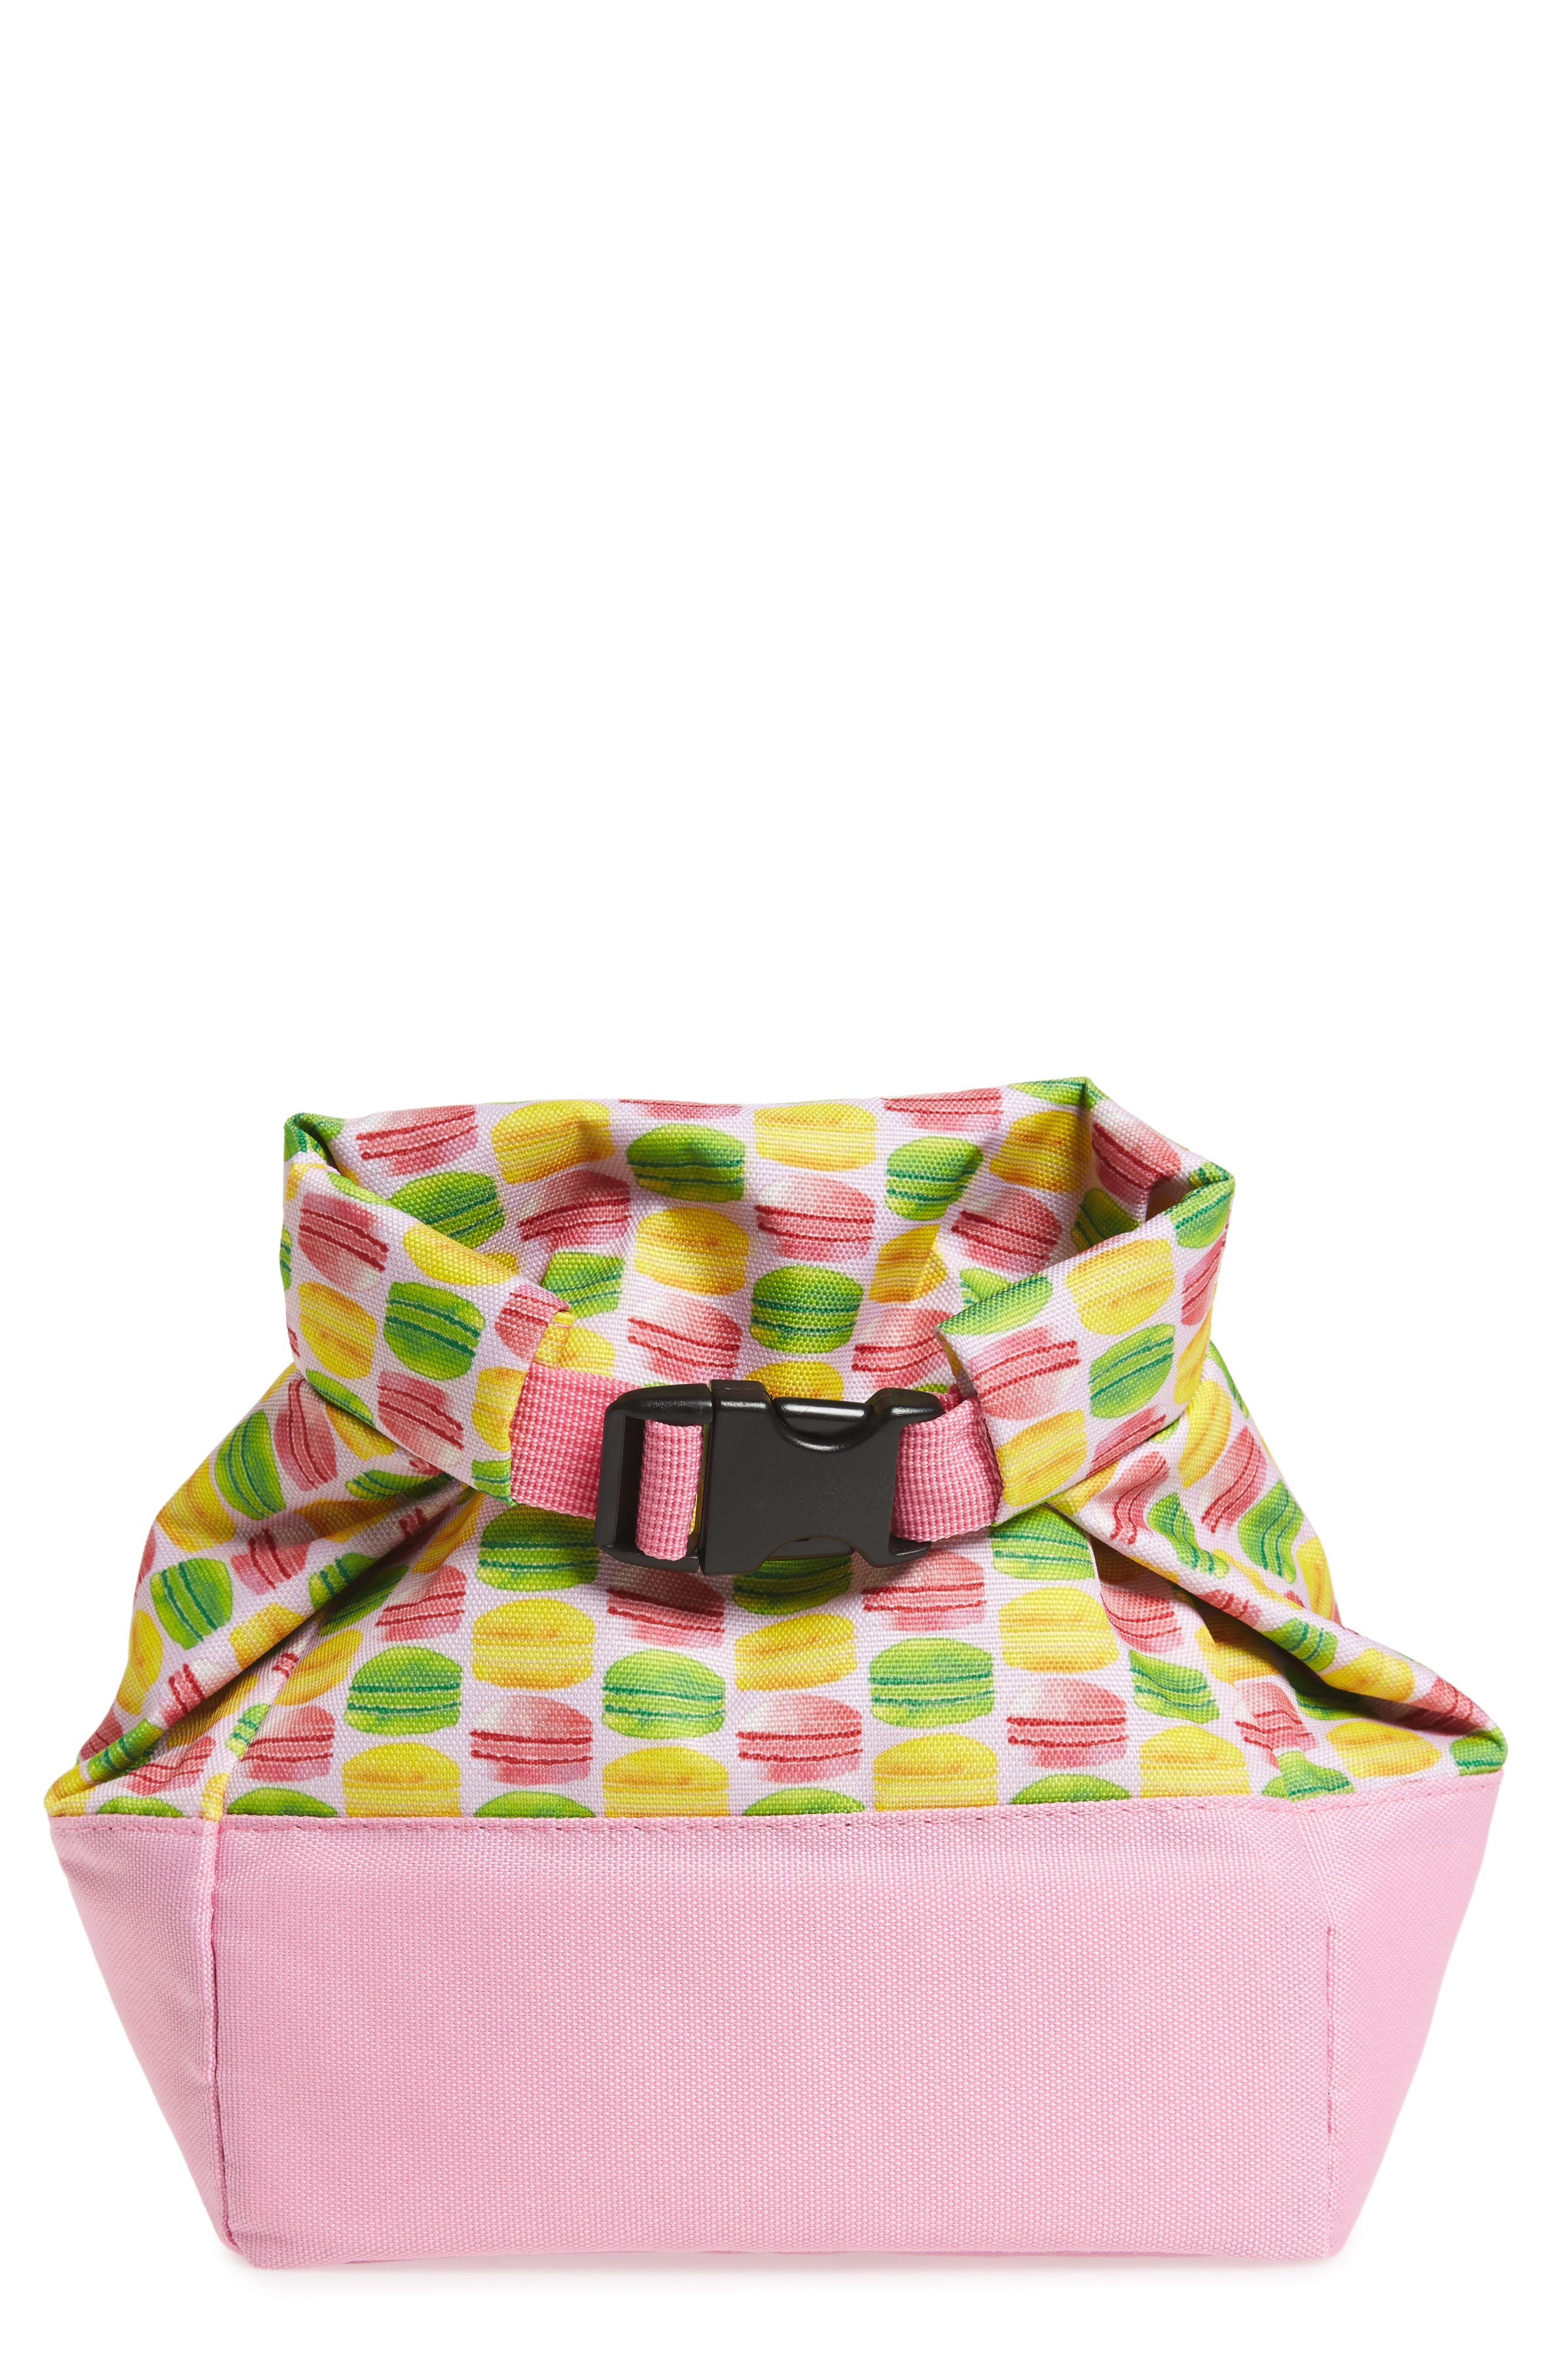 Macaron Print Roll Top Lunch Bag,                         Main,                         color, Pink